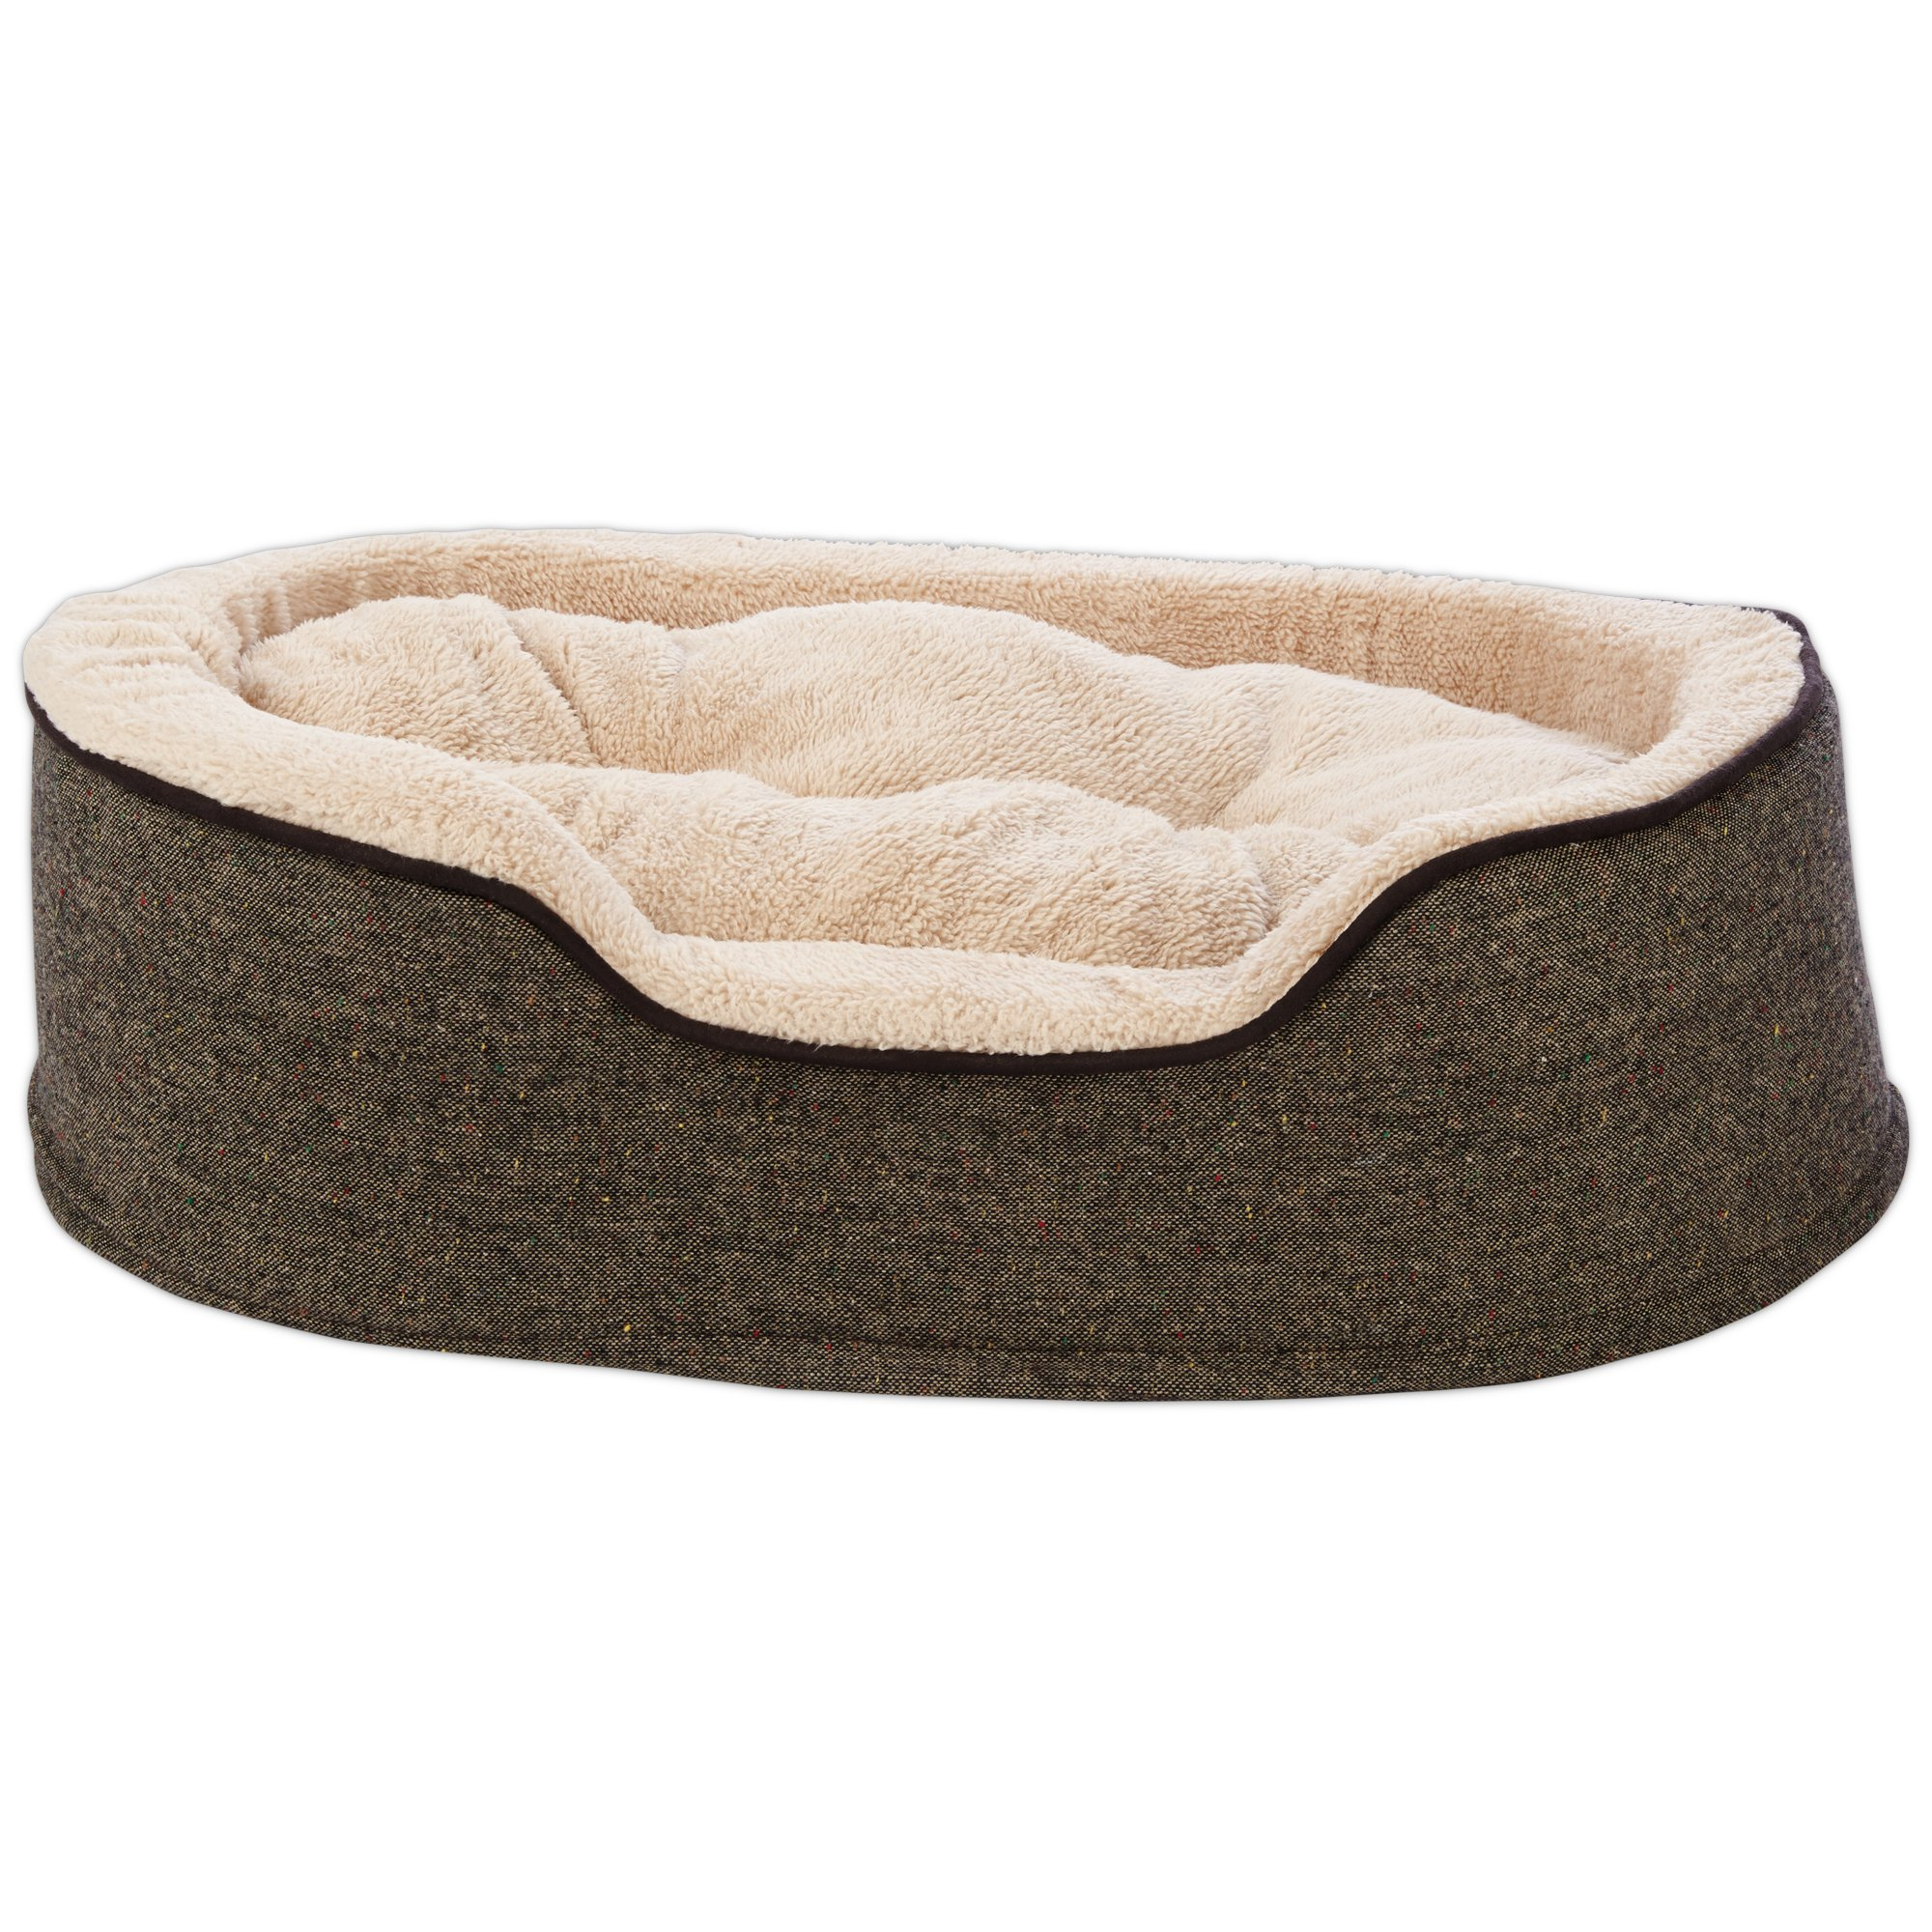 shop harmony bed beds en center petco petcostore lounger dog blue product striped